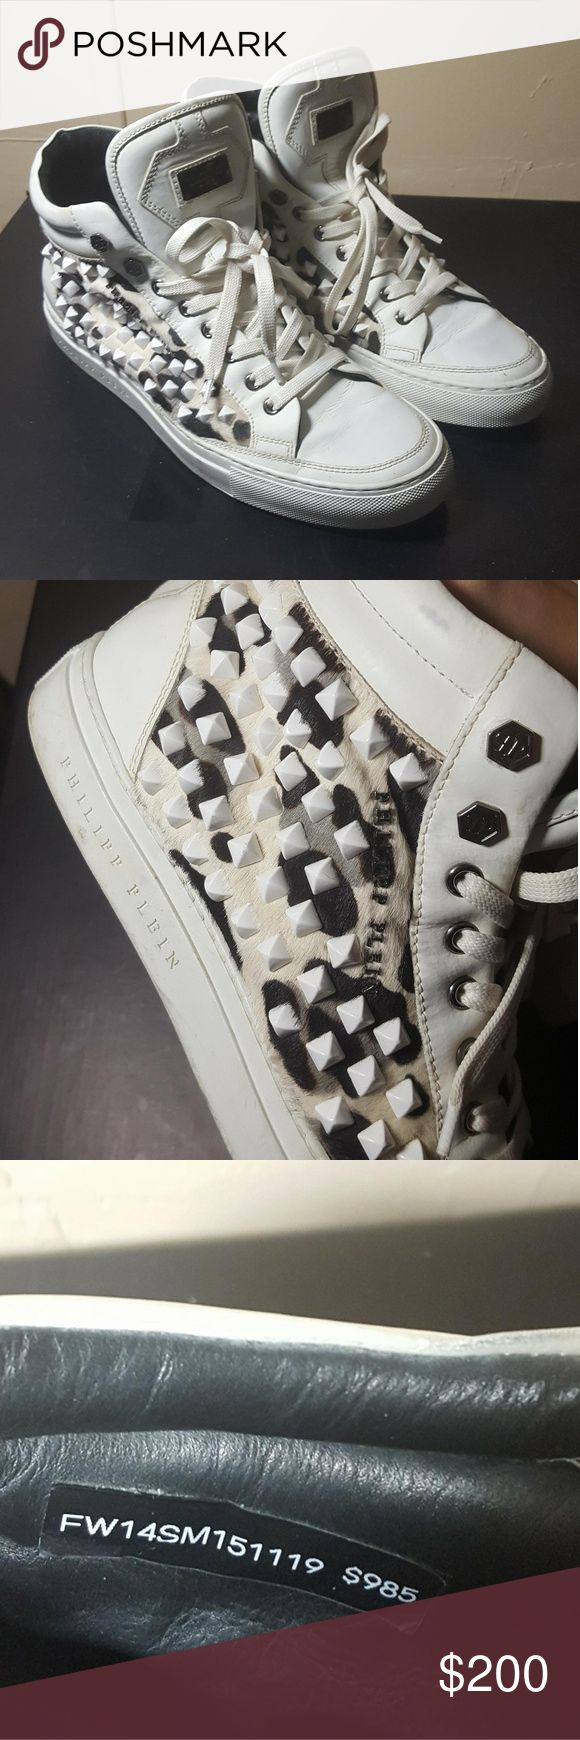 PHILIPP PLEIN studded sneakers 100% authentic European size 41 or men's size 9 great condition no box  Amazing quality leather beautiful calf hair uppers with studs  still has the $985 price tag in shoe  #saksfifth #neiman marcus #ferragamo #versace #gucci #vlone #burberry #rick owens #raf simons #off white #virgil abloh #yohji yamamoto #palace #supreme #a bathing ape #bape #louis vuitton #Christian louboutin #giuseppe zanotti #fear of god #yeezy #kanye West Philipp Plein Shoes Sneakers